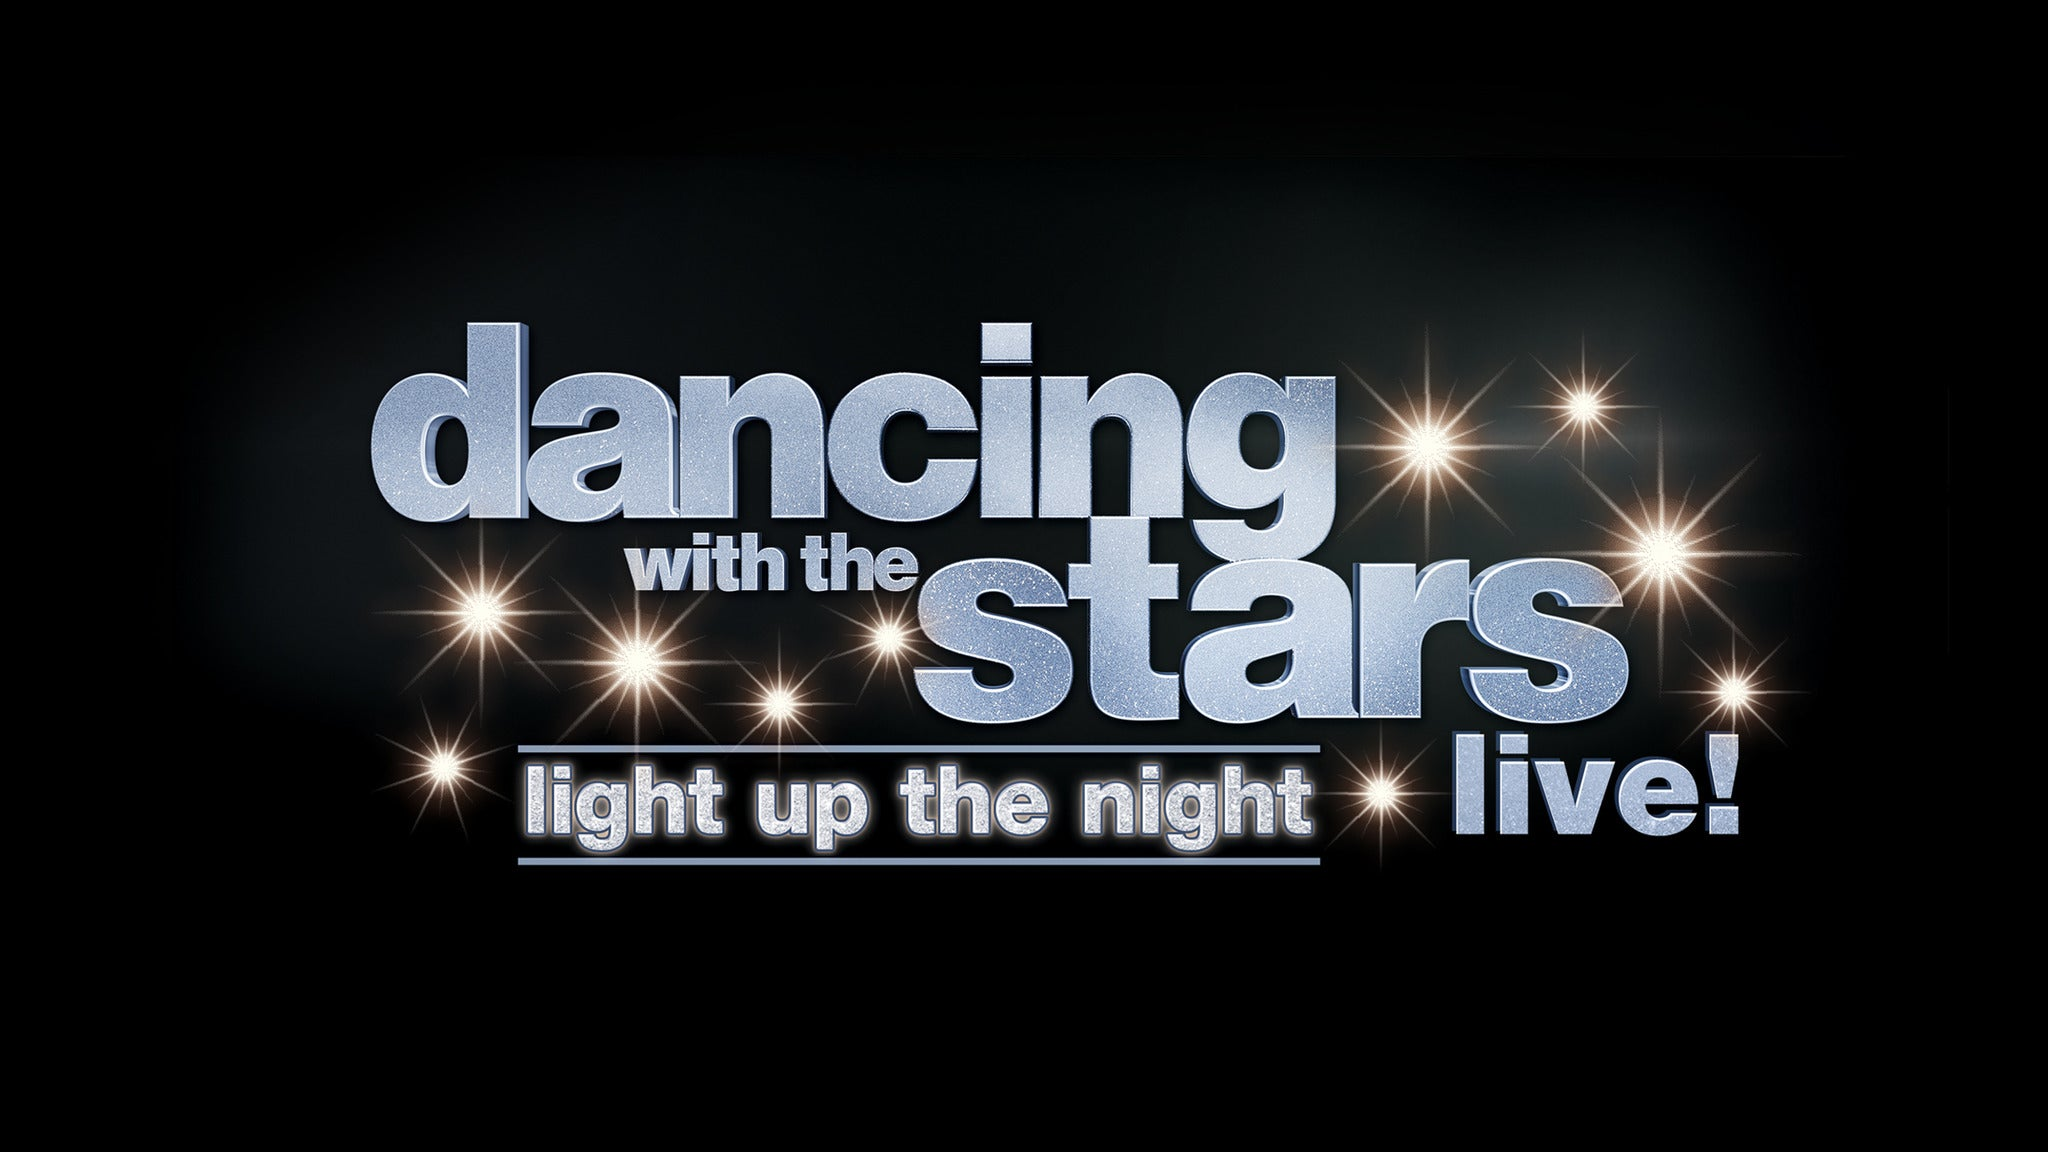 Dancing with the Stars - Meet & Greet Packages